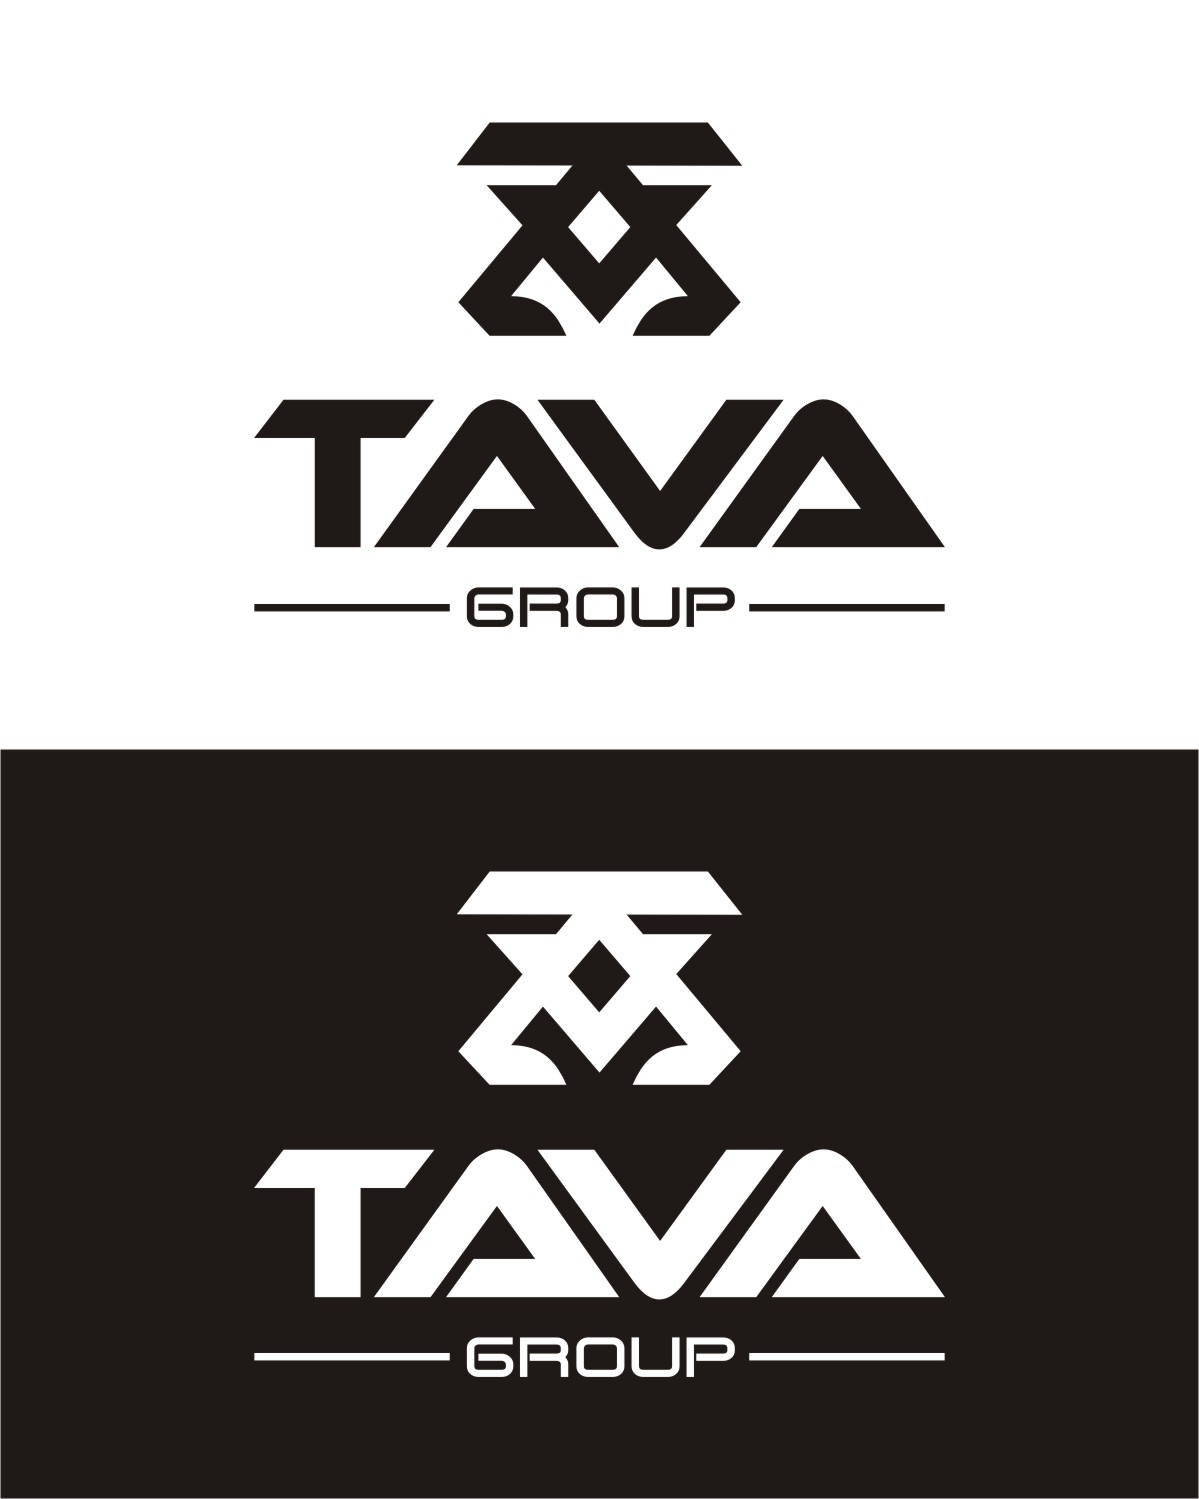 Logo Design by Spider Graphics - Entry No. 170 in the Logo Design Contest Creative Logo Design for Tava Group.